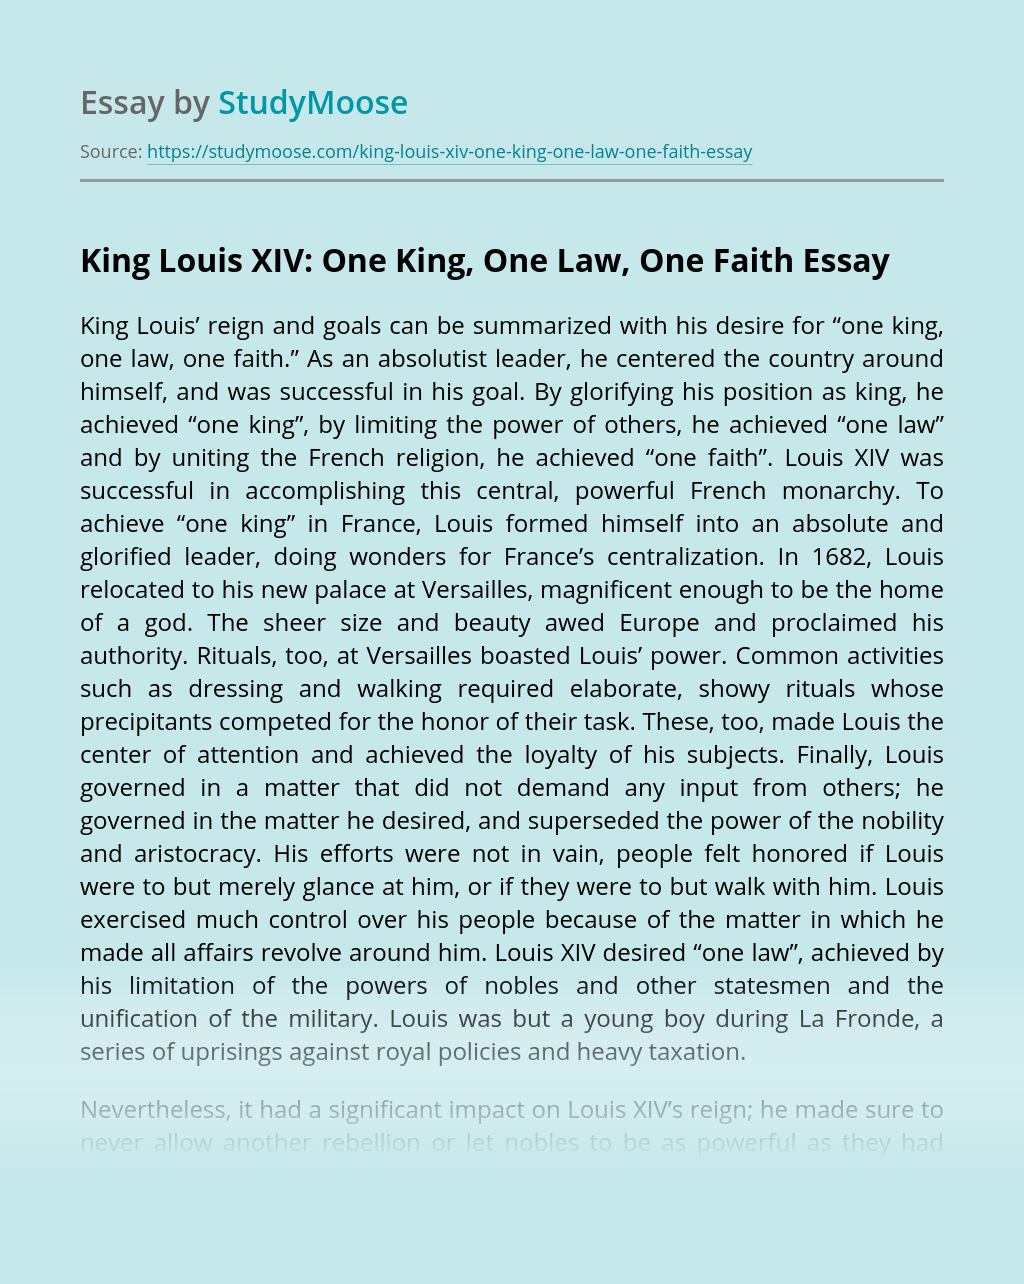 King Louis XIV: One King, One Law, One Faith